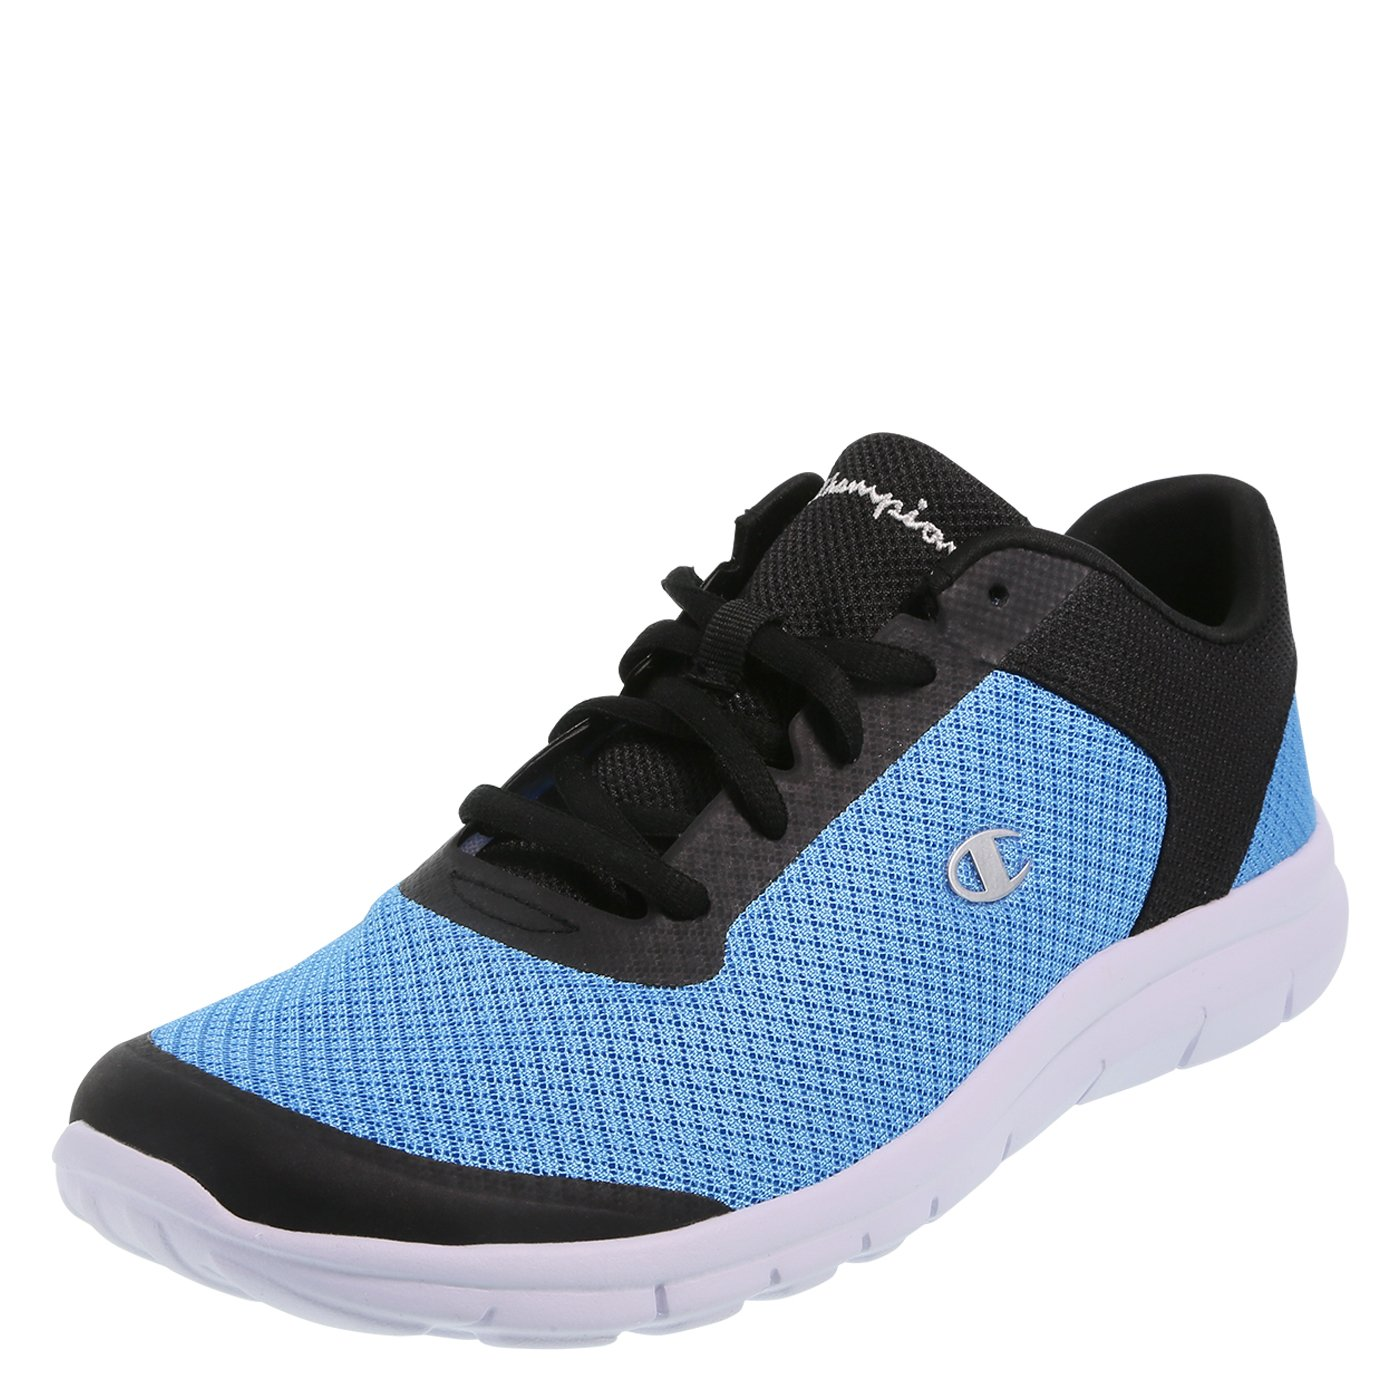 CHAQLIN Casual High Top Unisex Canvas Shoes Sneaker With Galaxy Printed For Women Mens US 11 BMEUR 44